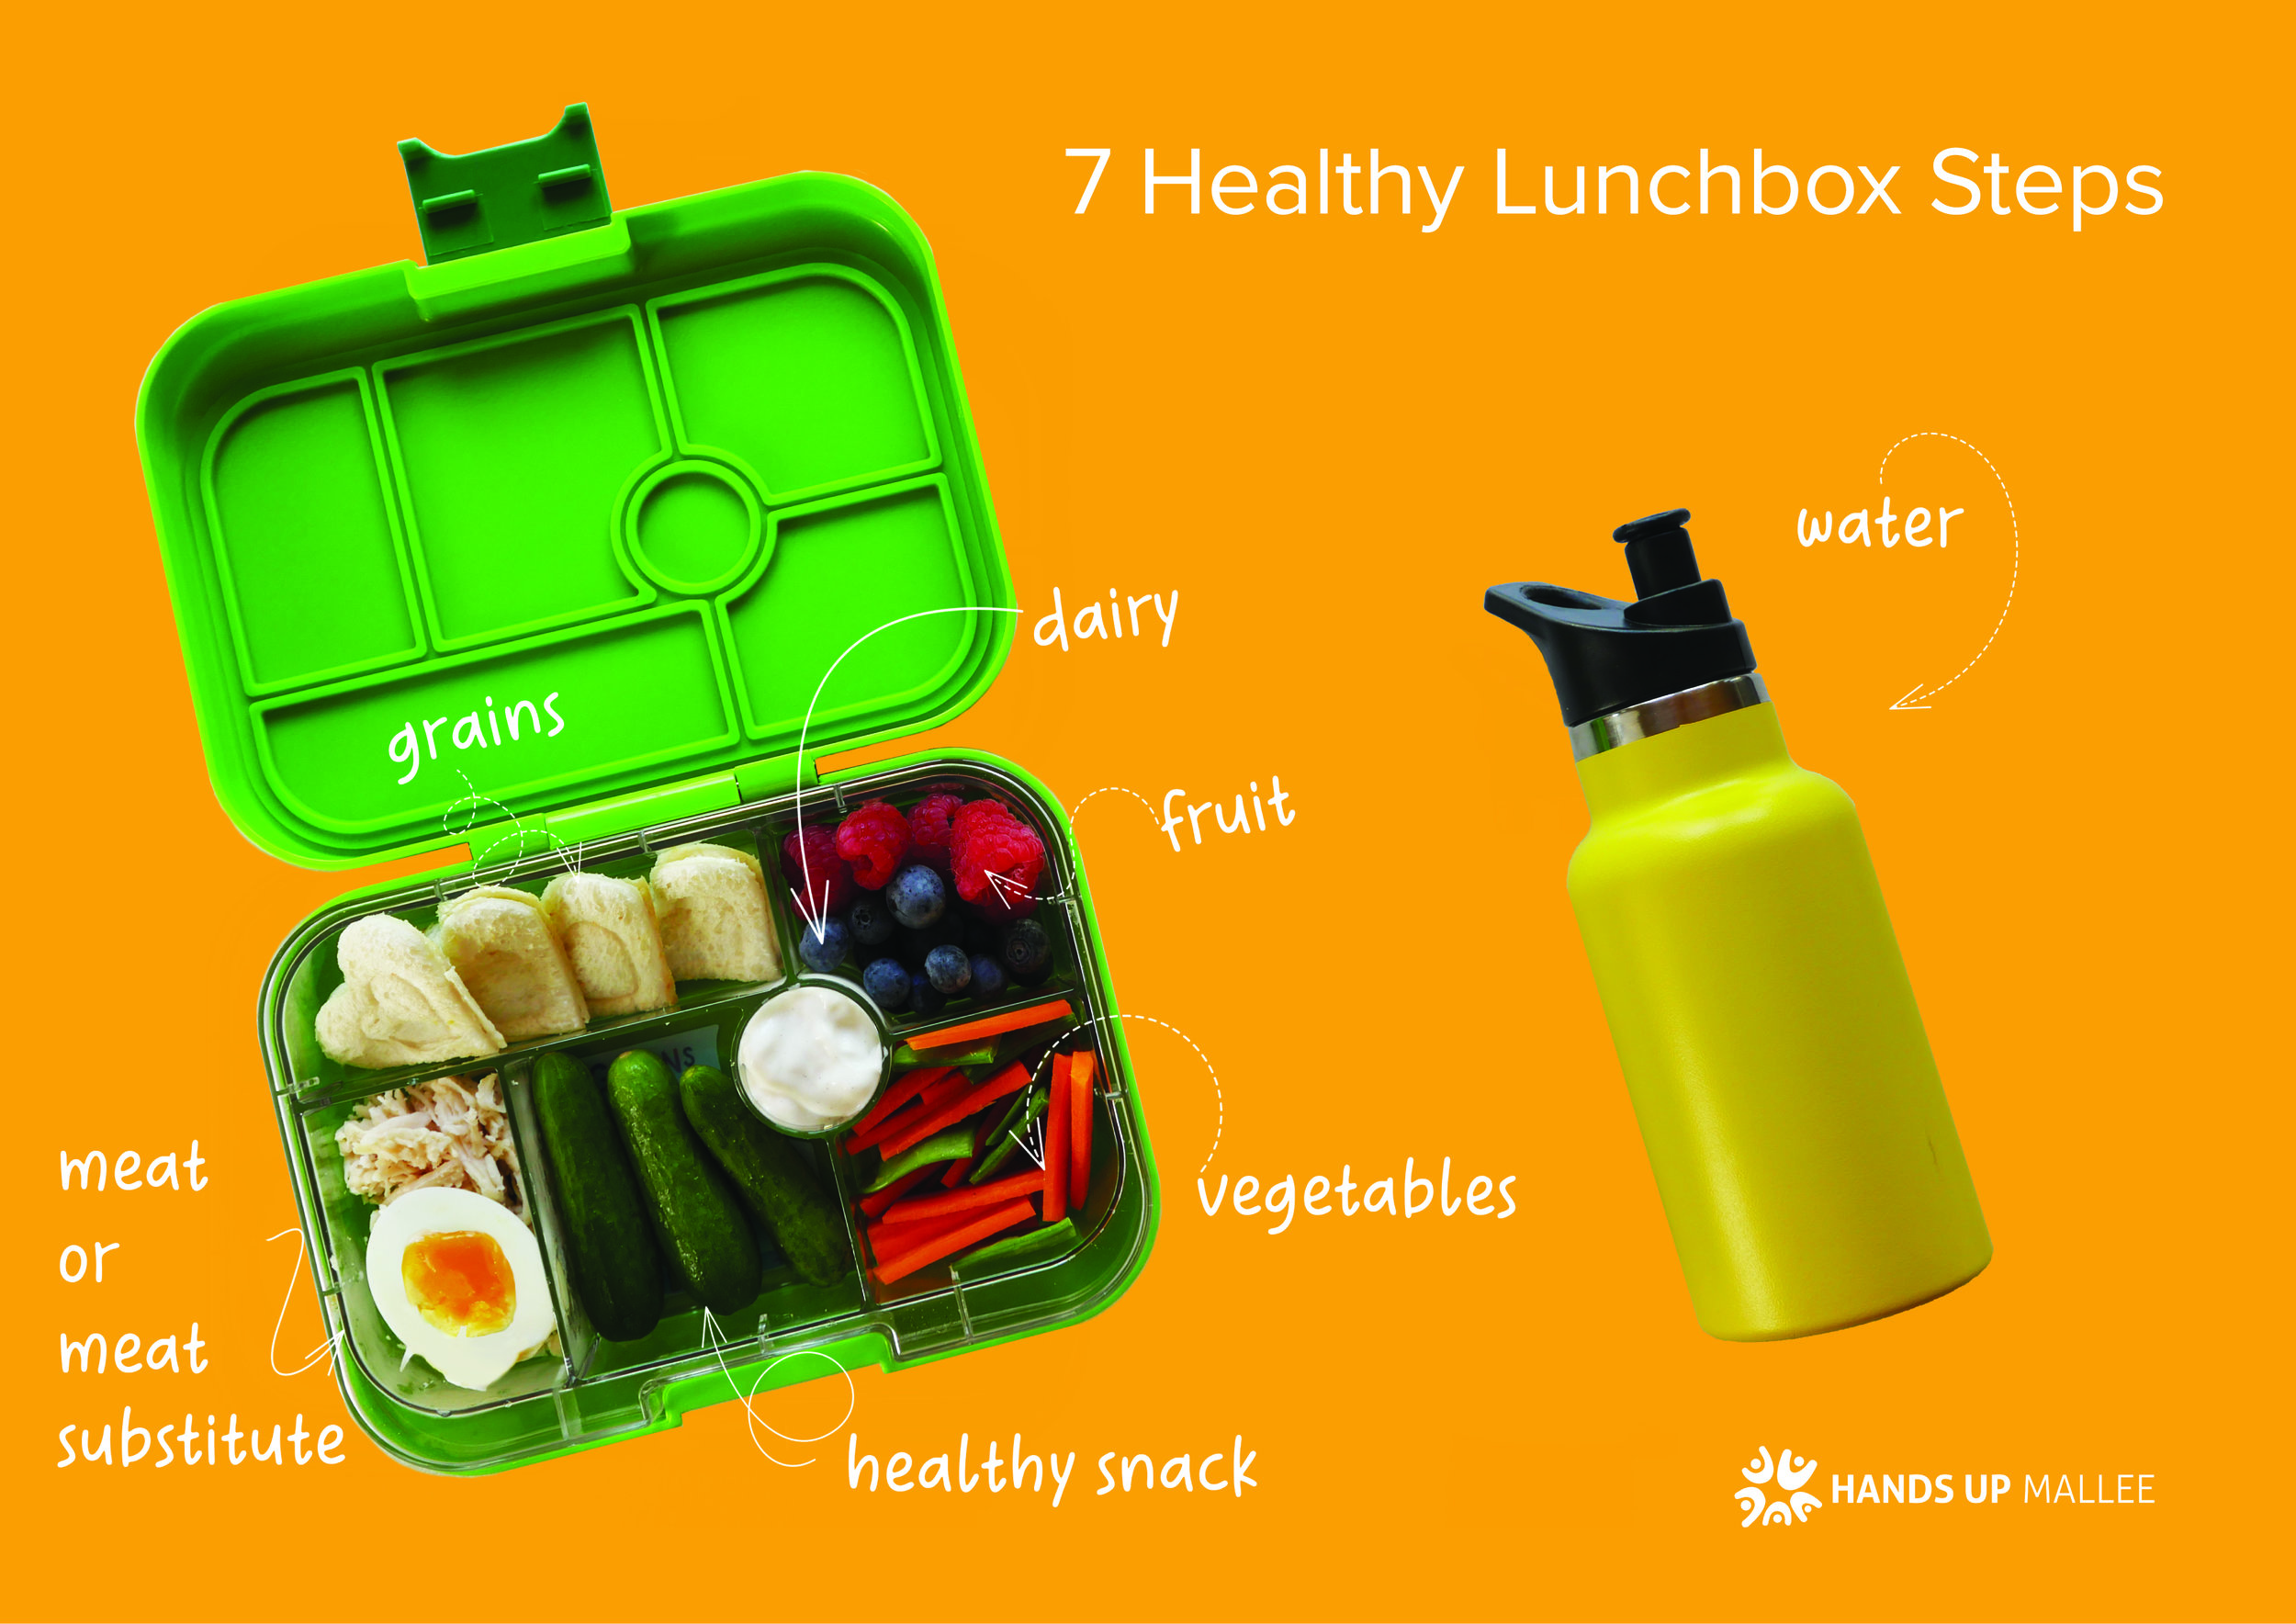 7 HEALTHY LUNCHBOX STEPS - Download this 2 sided guide to packing a healthy lunchbox